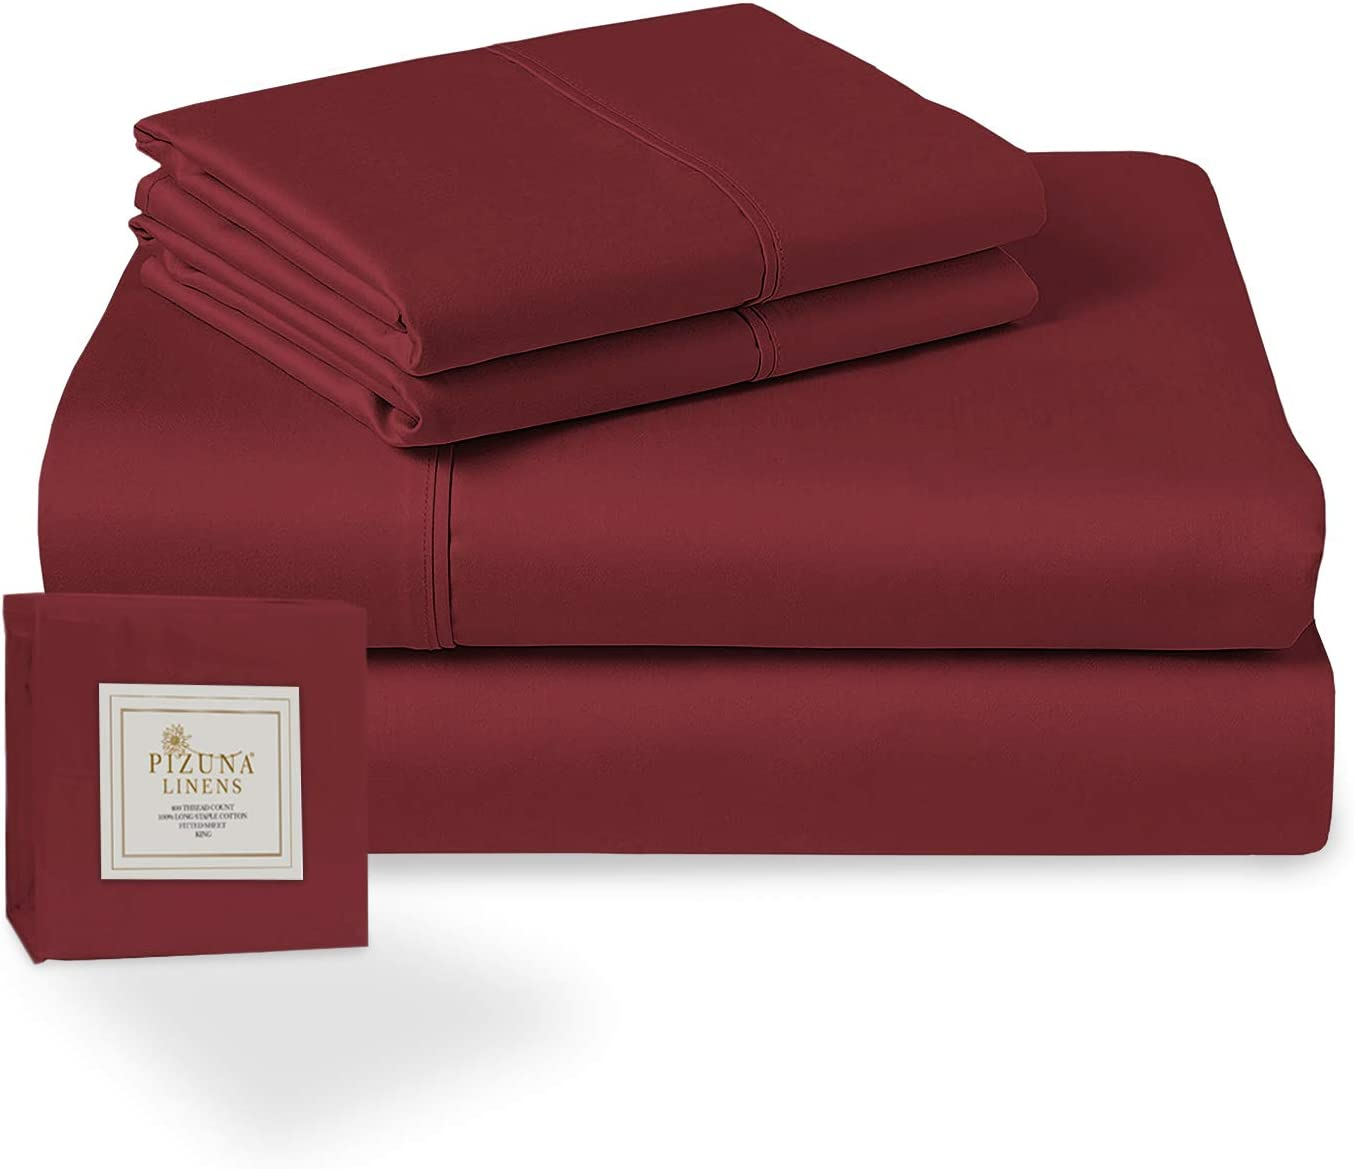 Pizuna 400 Thread Count Cotton Queen Sheets Set Rio Red, 100% Long Staple Cotton Soft Sateen Bed Sheets fits Upto 15 inch Deep Pocket (Rio Red 100% Cotton Queen-Size Sheet)